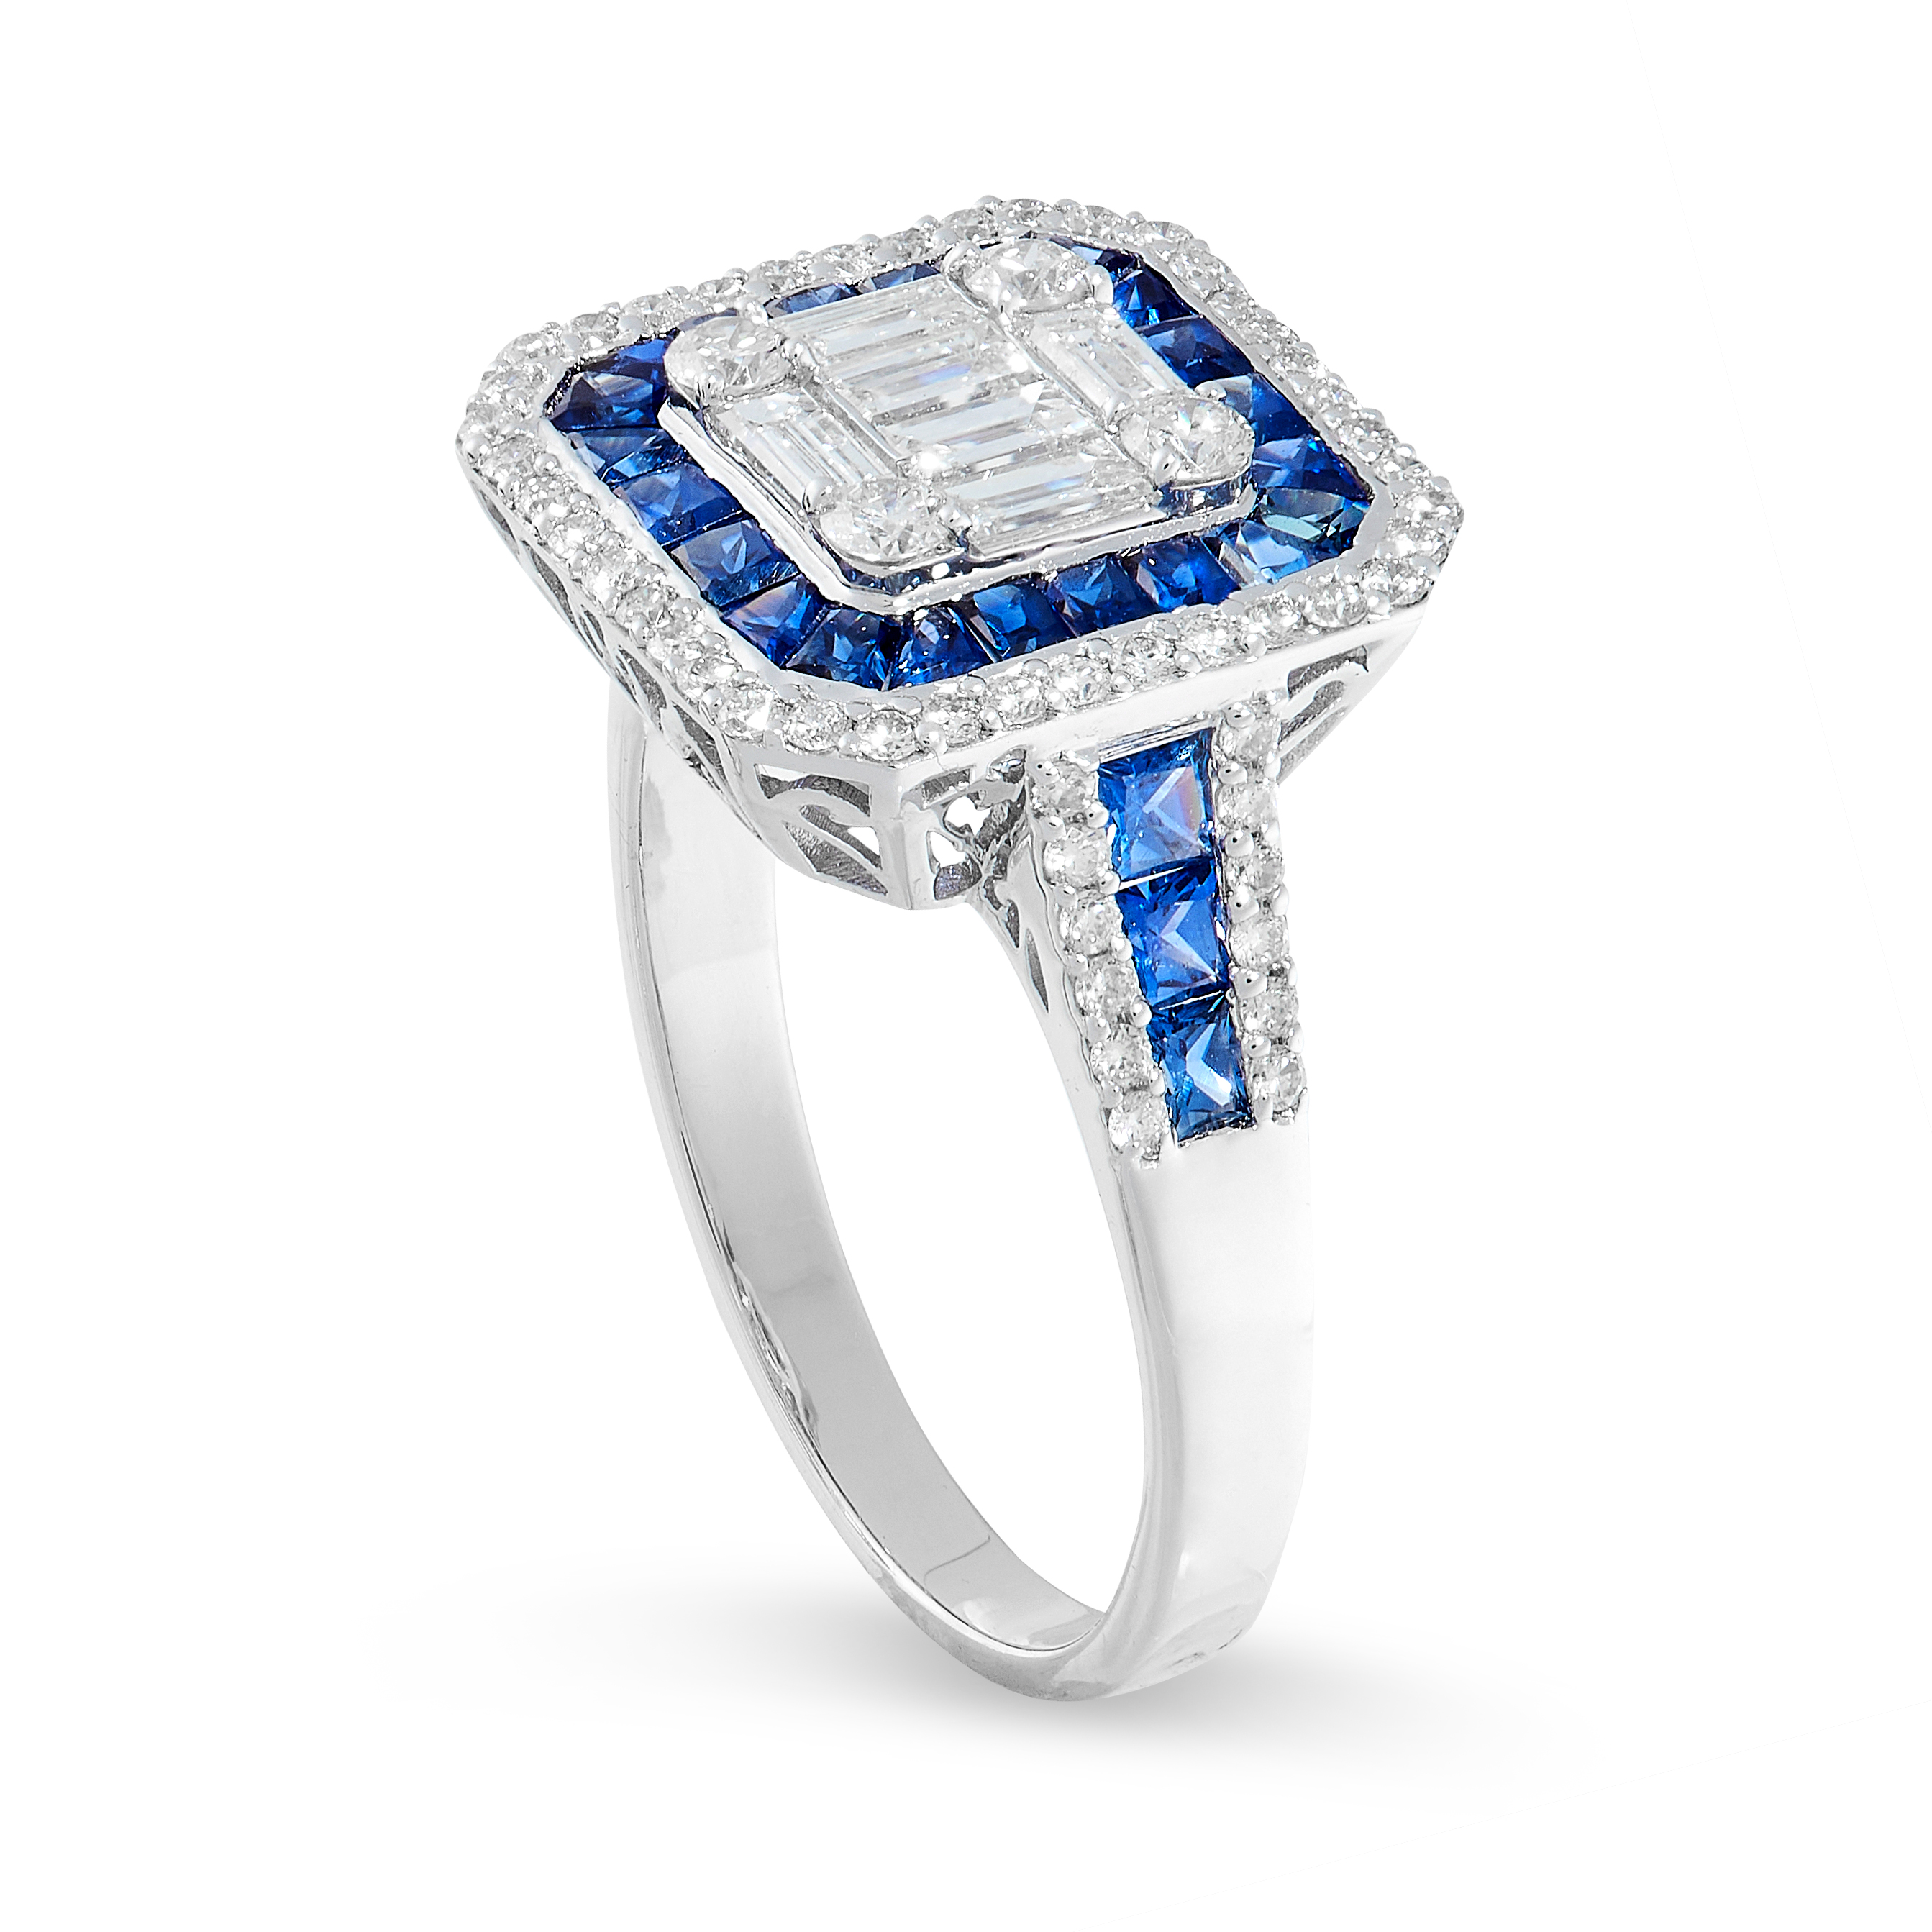 SAPPHIRE AND DIAMOND RING the central cluster composed of baguette and brilliant-cut diamonds,